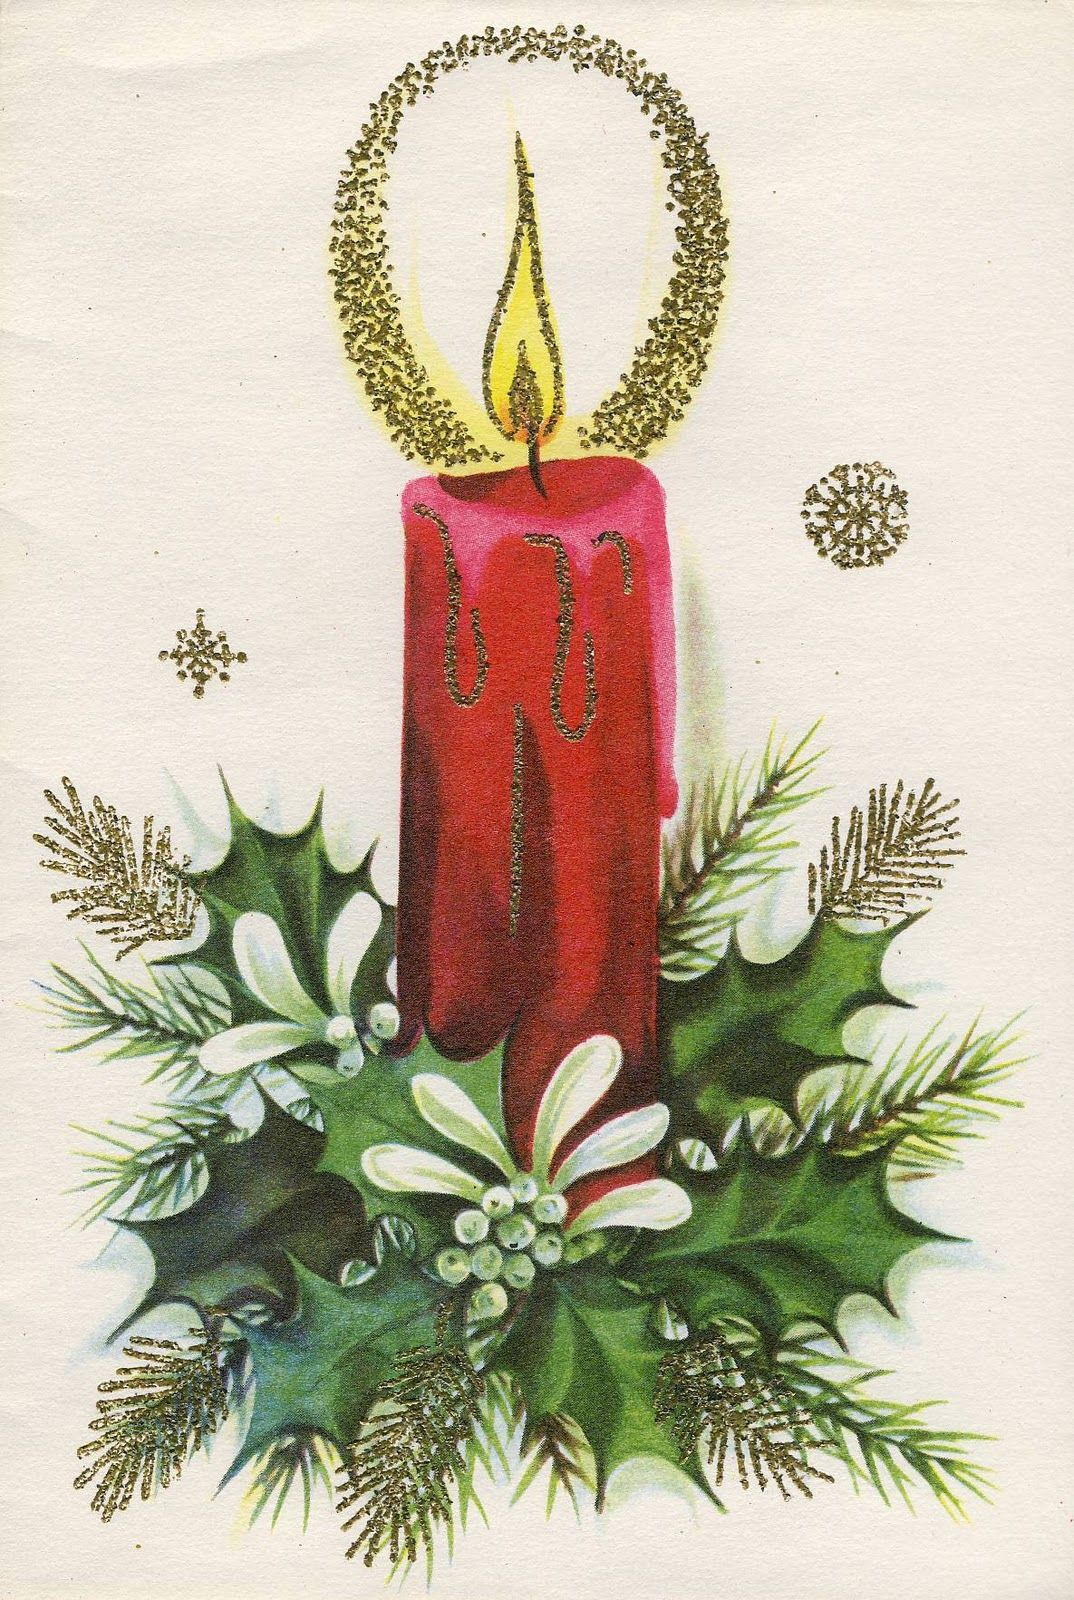 Vintage Christmas Candles.Vintage Christmas Card Christmas Vintage Bells Candles